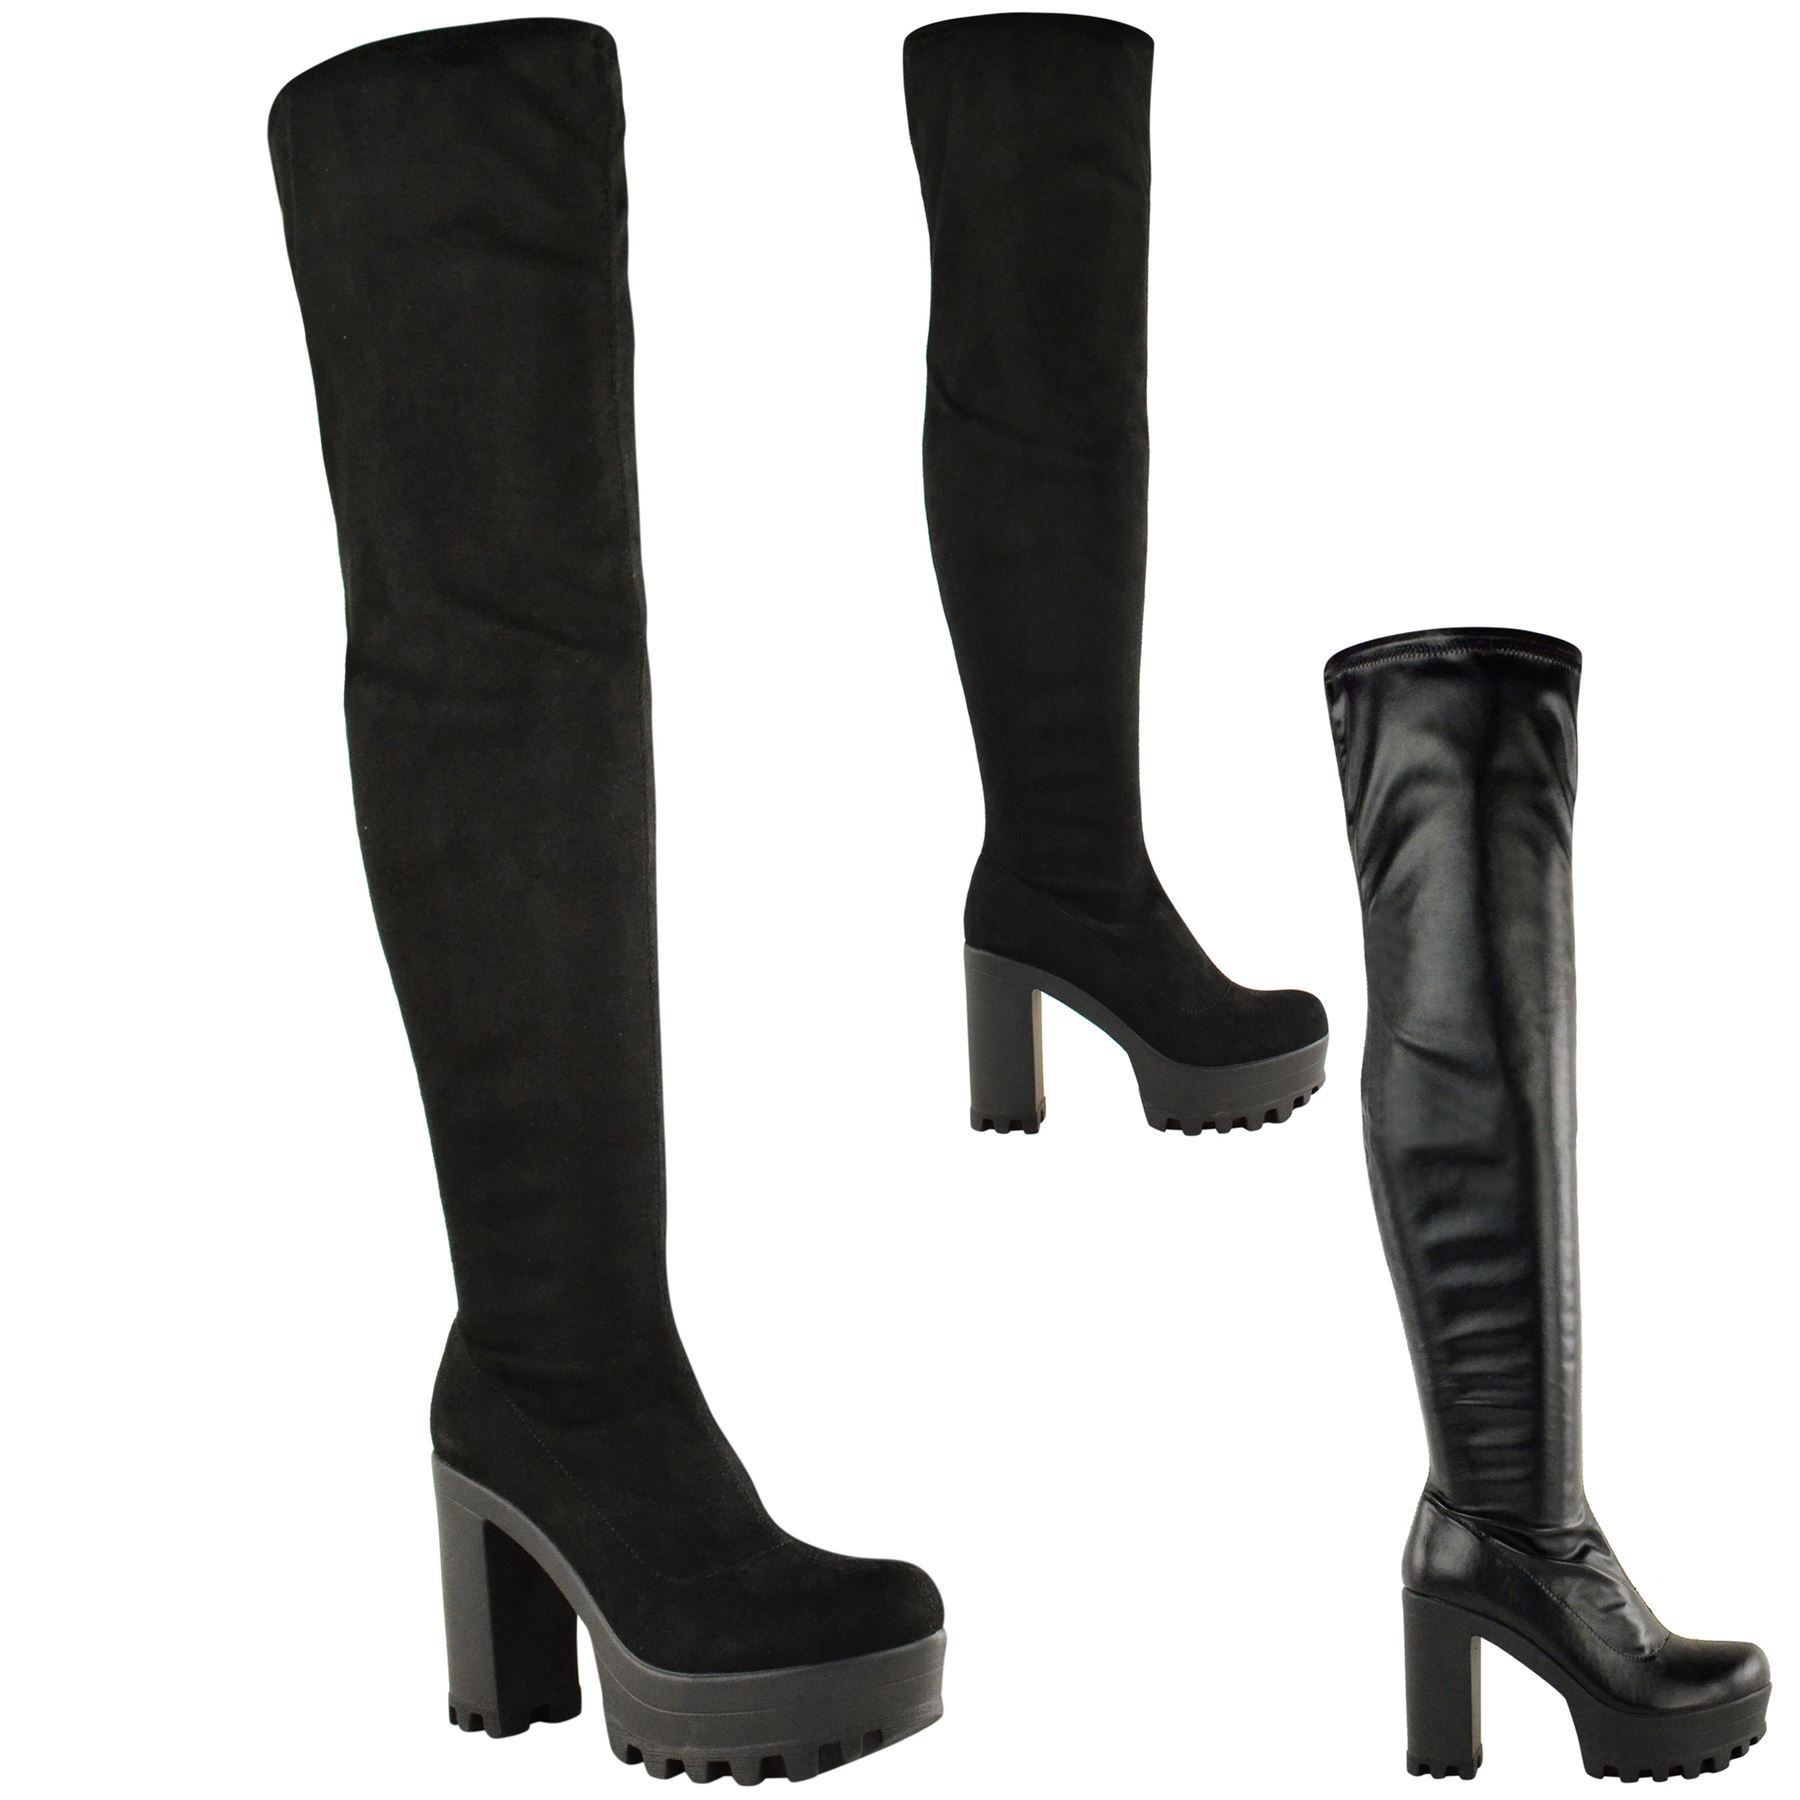 Details about LADIES WOMENS OVER THE KNEE THIGH HIGH CHUNKY ...